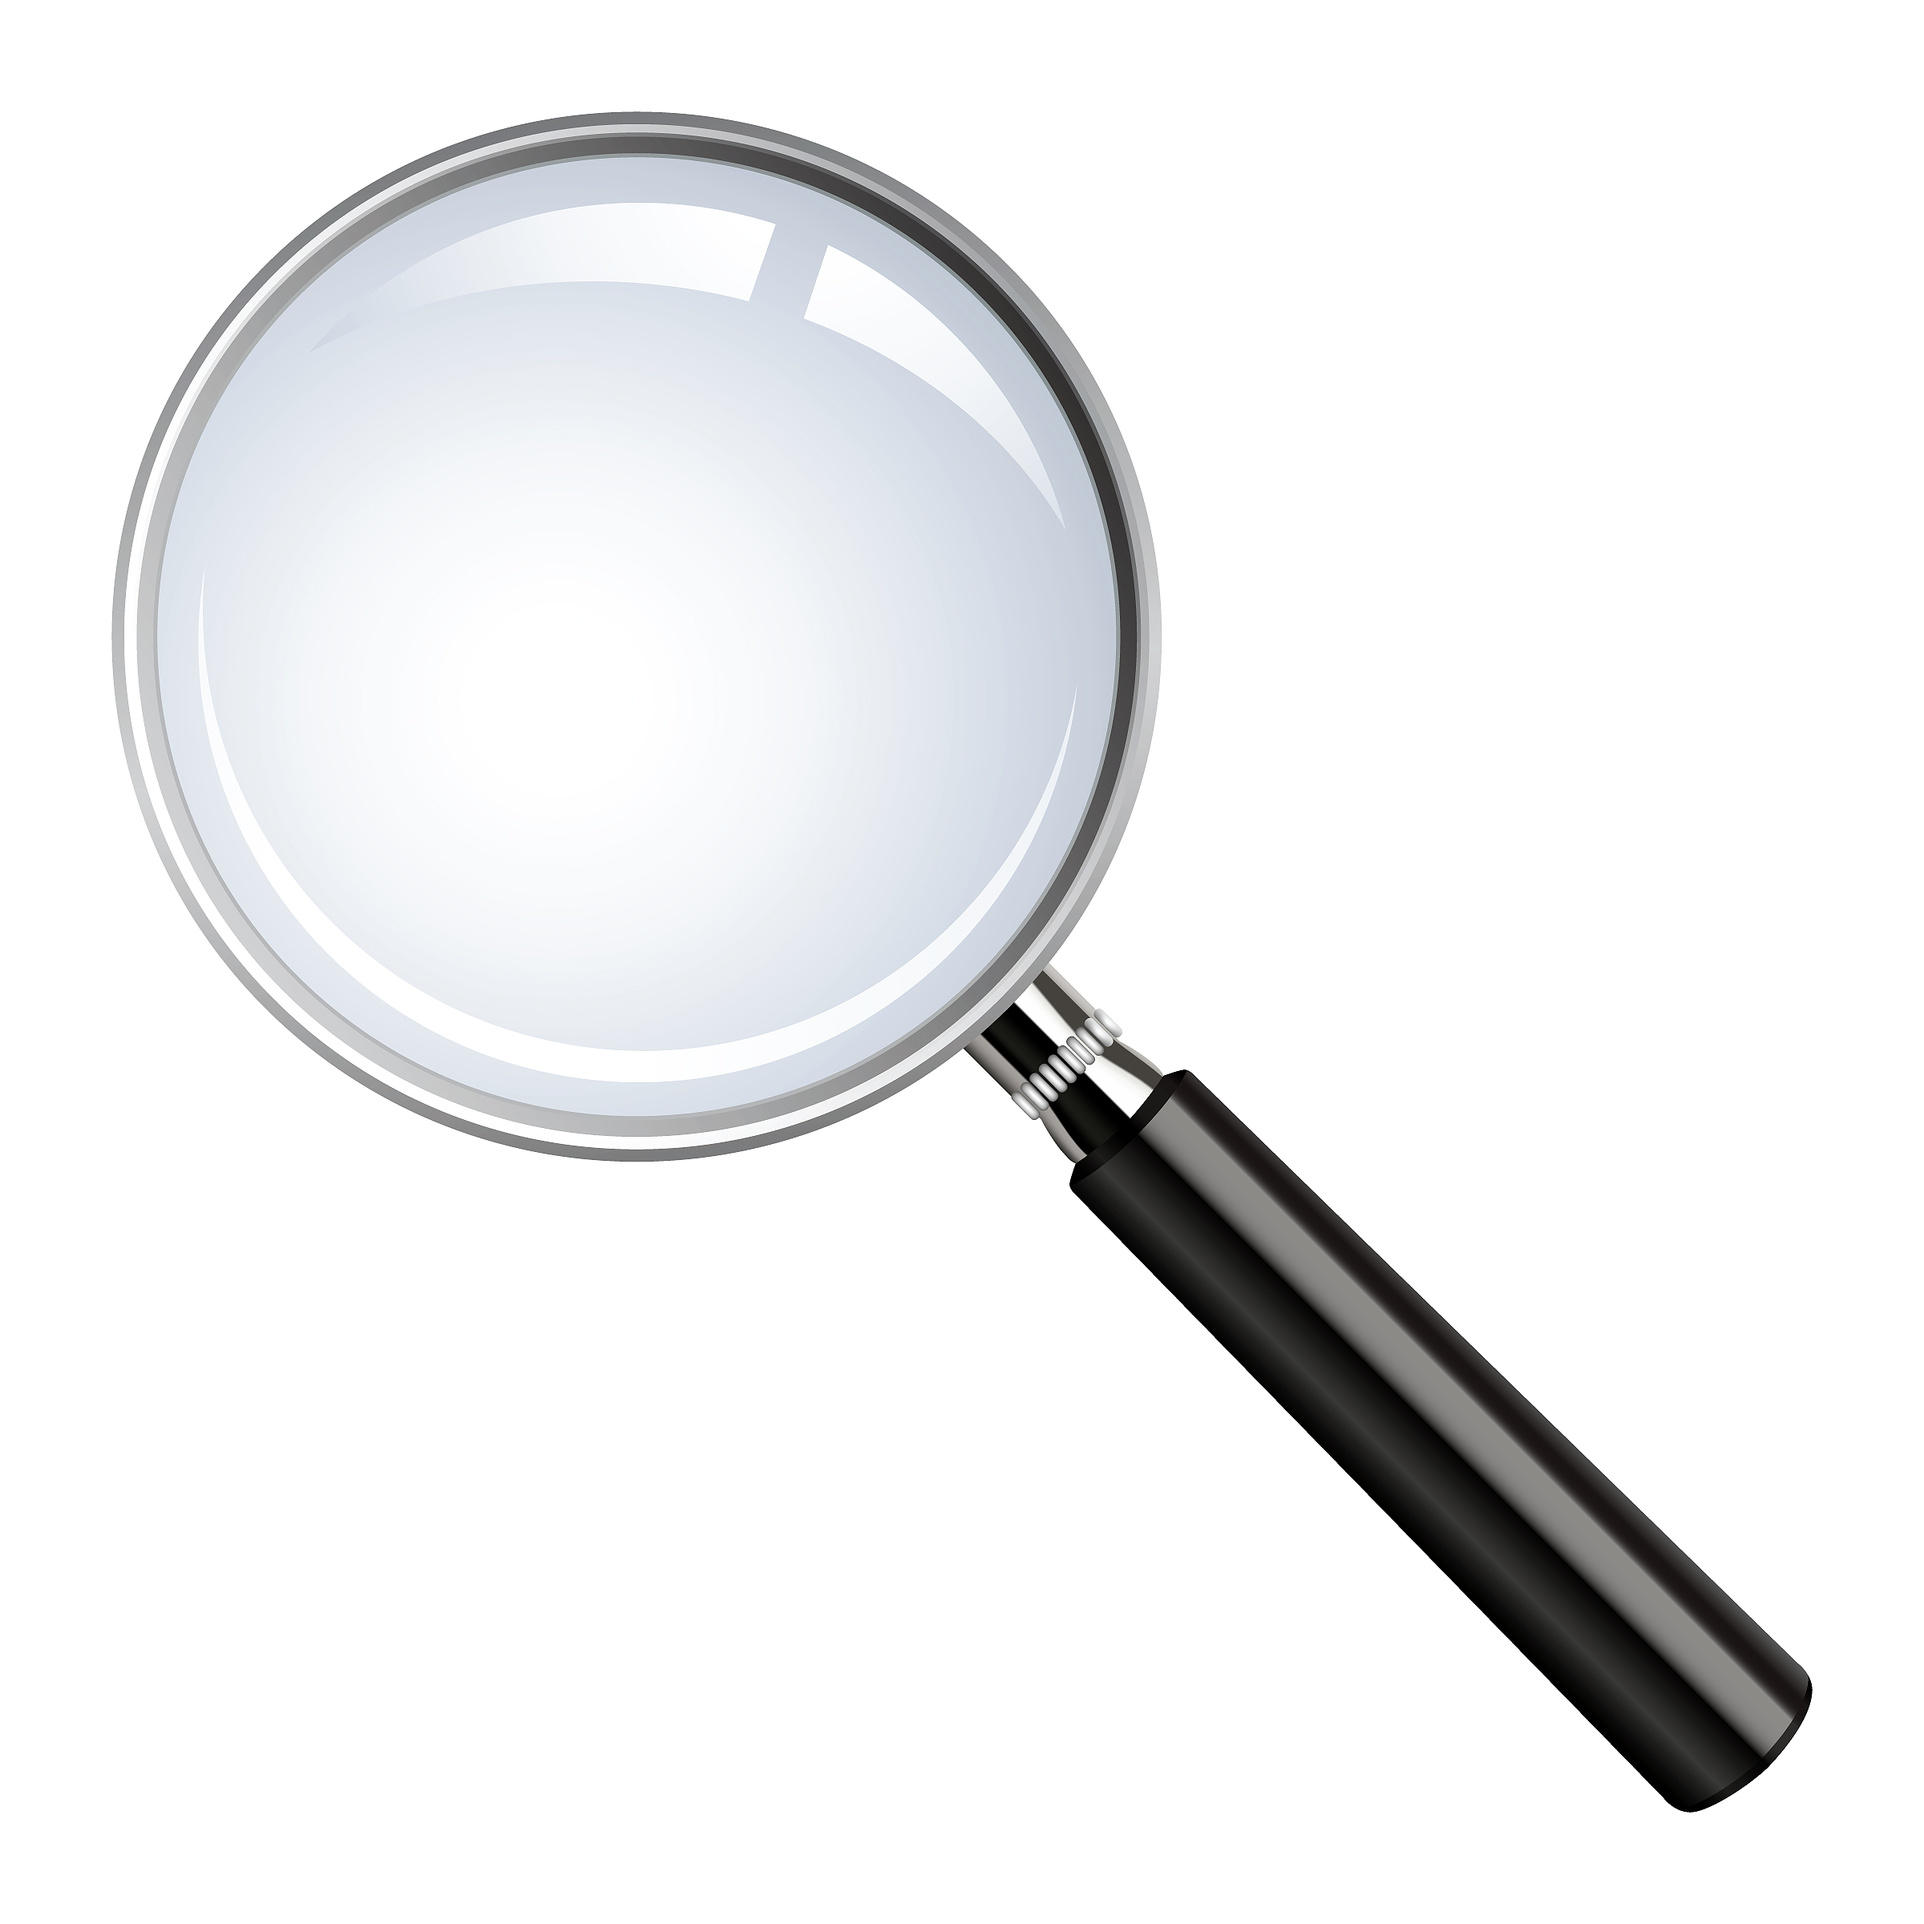 Magnifying glass clipart vector picture freeuse stock Vector magnifying glass clipart - Cliparting.com picture freeuse stock